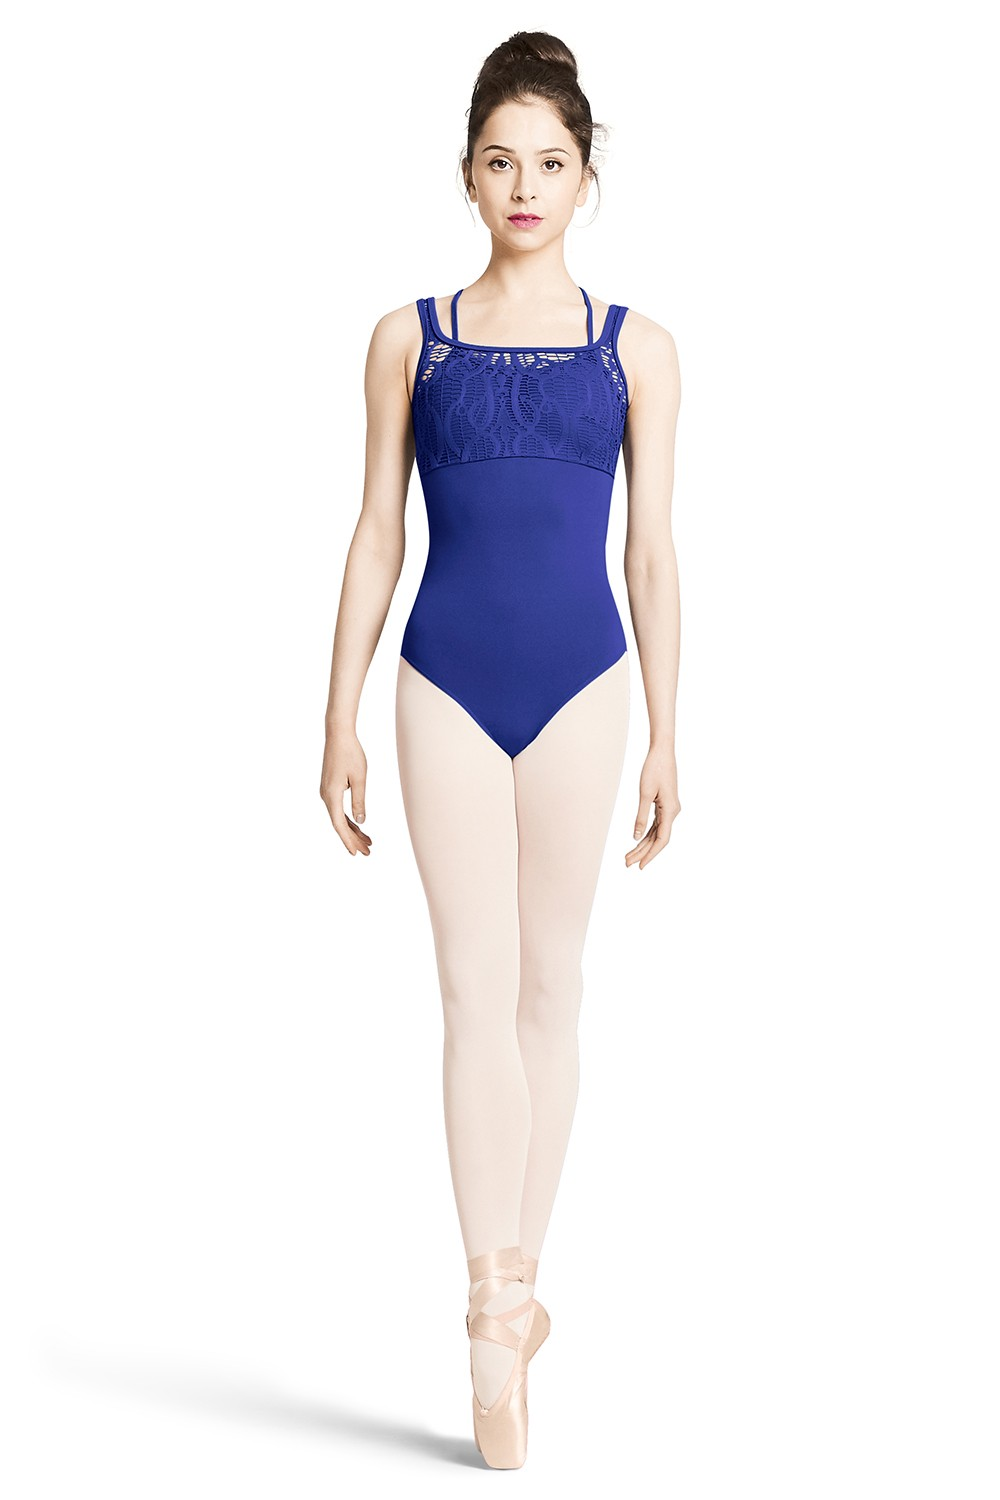 Camisole Leotard Children's Dance Leotards